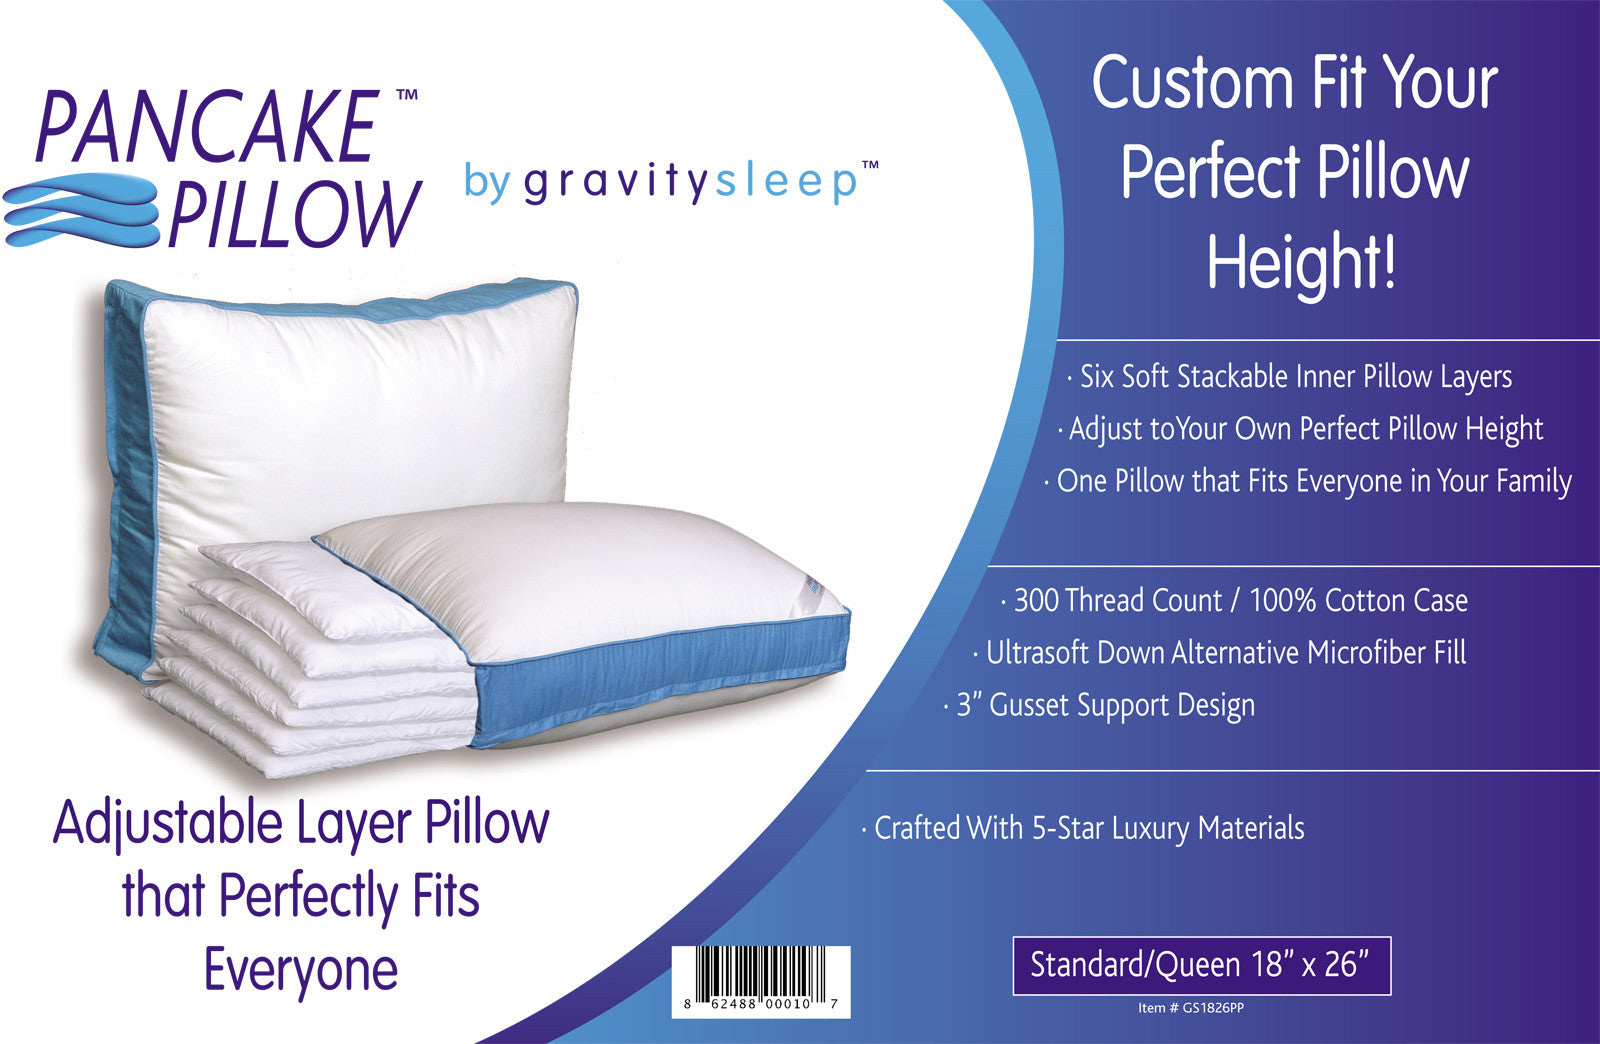 Uncategorized Pancake Pillow faq pancakepillow thanks so much for purchasing our pancake pillow were getting great response to the product and we hope it works you too